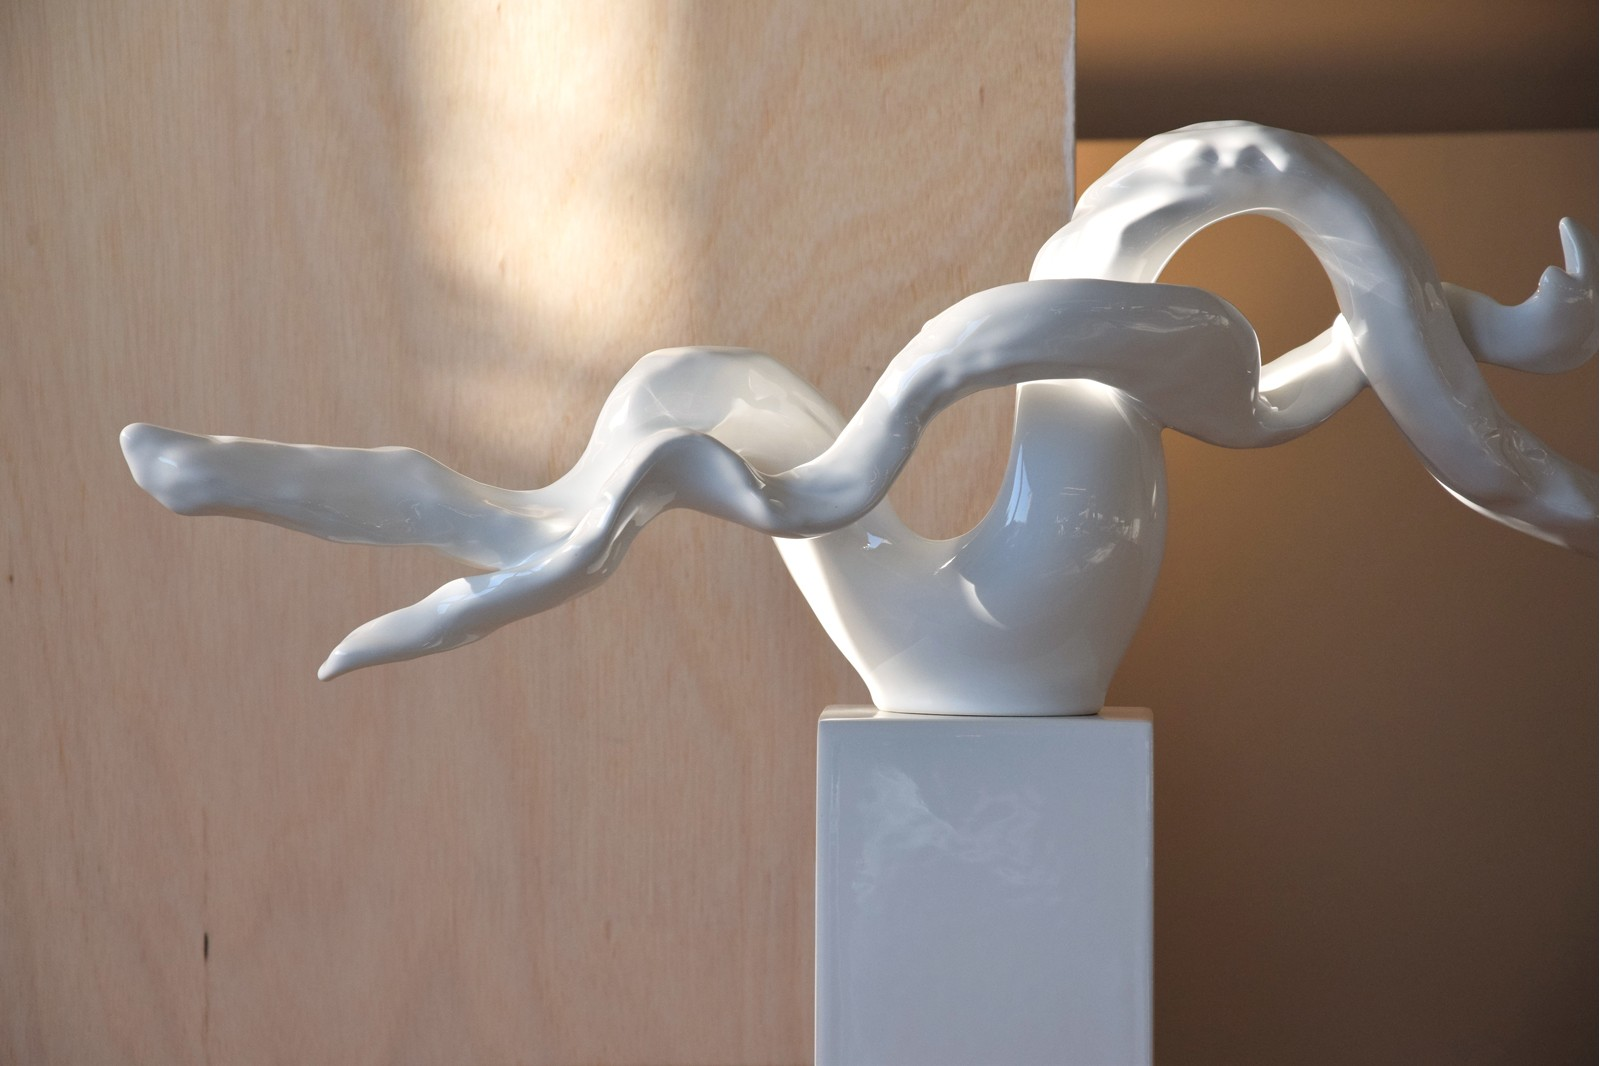 ABSTRACT CERAMIC SCULPTURE